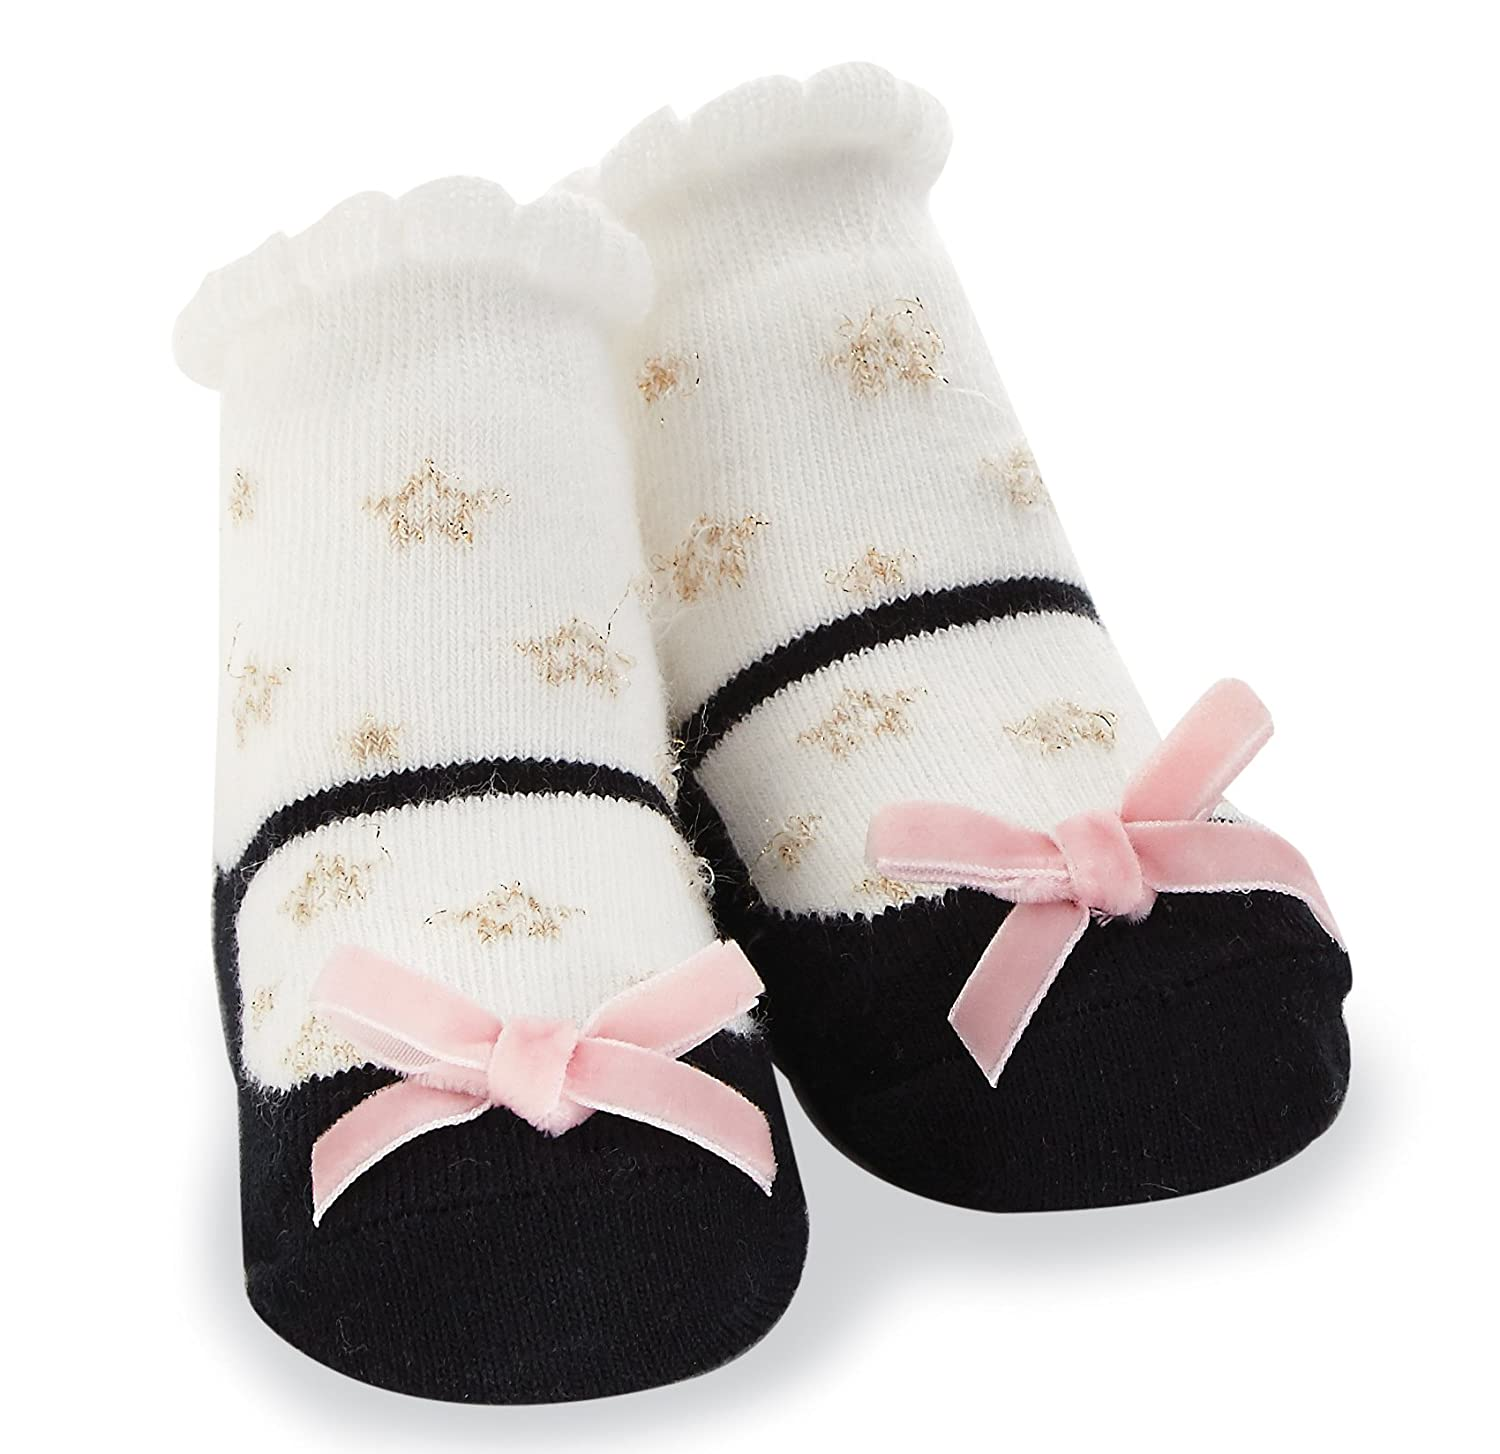 0-12 Months Mud Pie Baby Girl Infant Black and White Gold Star Socks